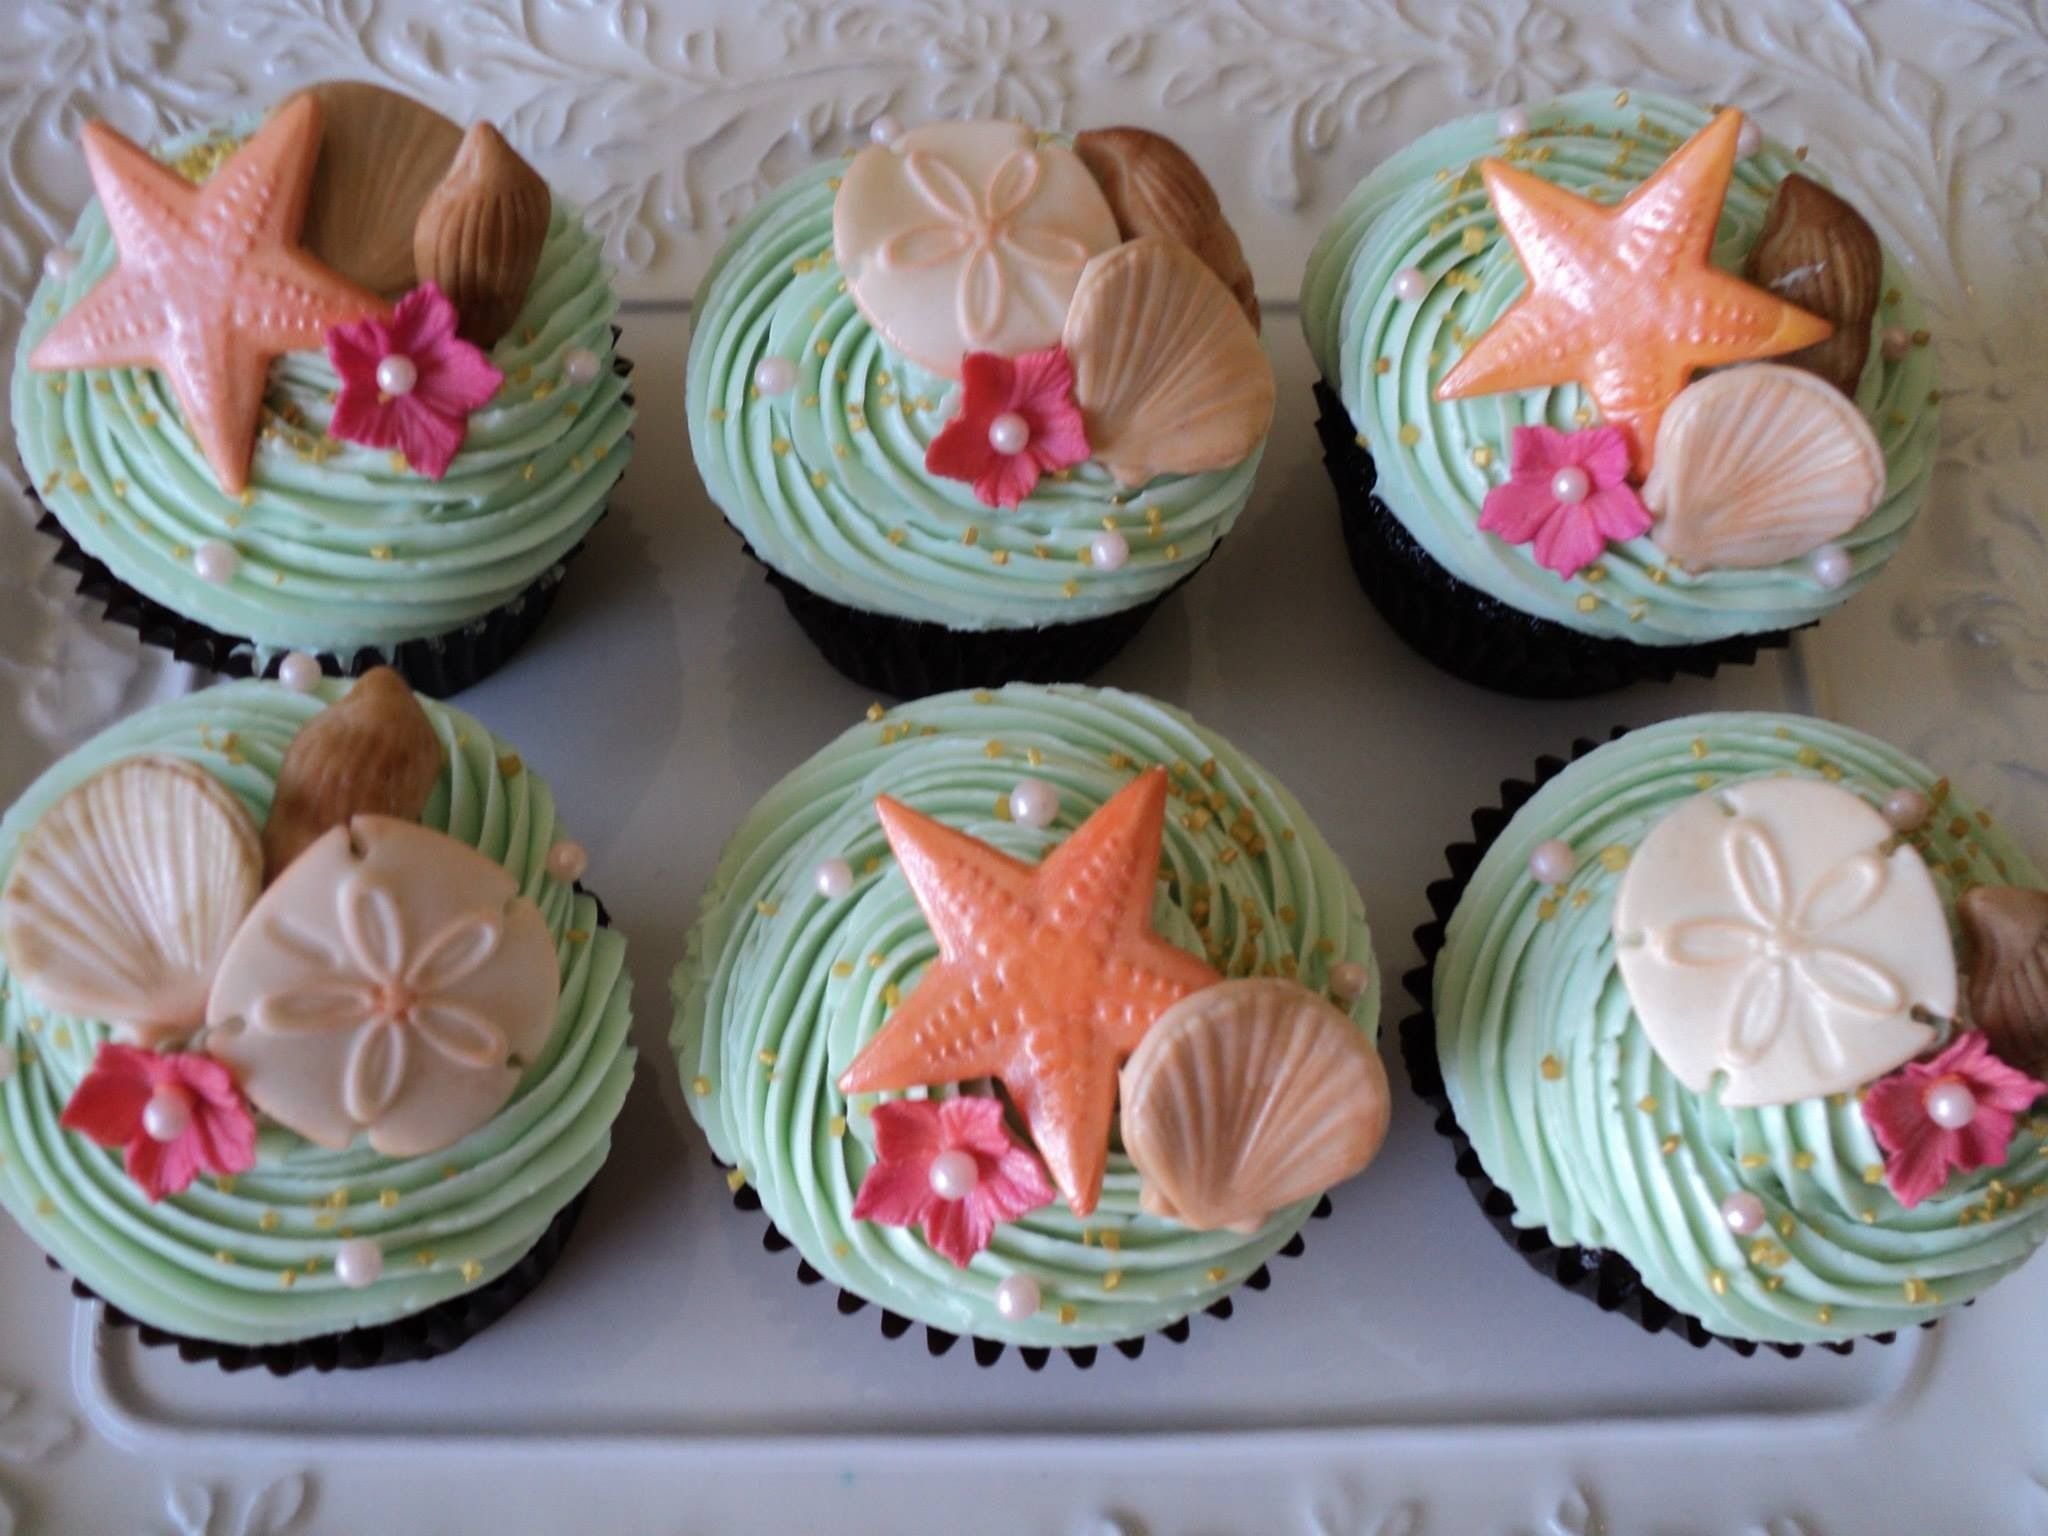 Medium Of Beach Themed Cakes